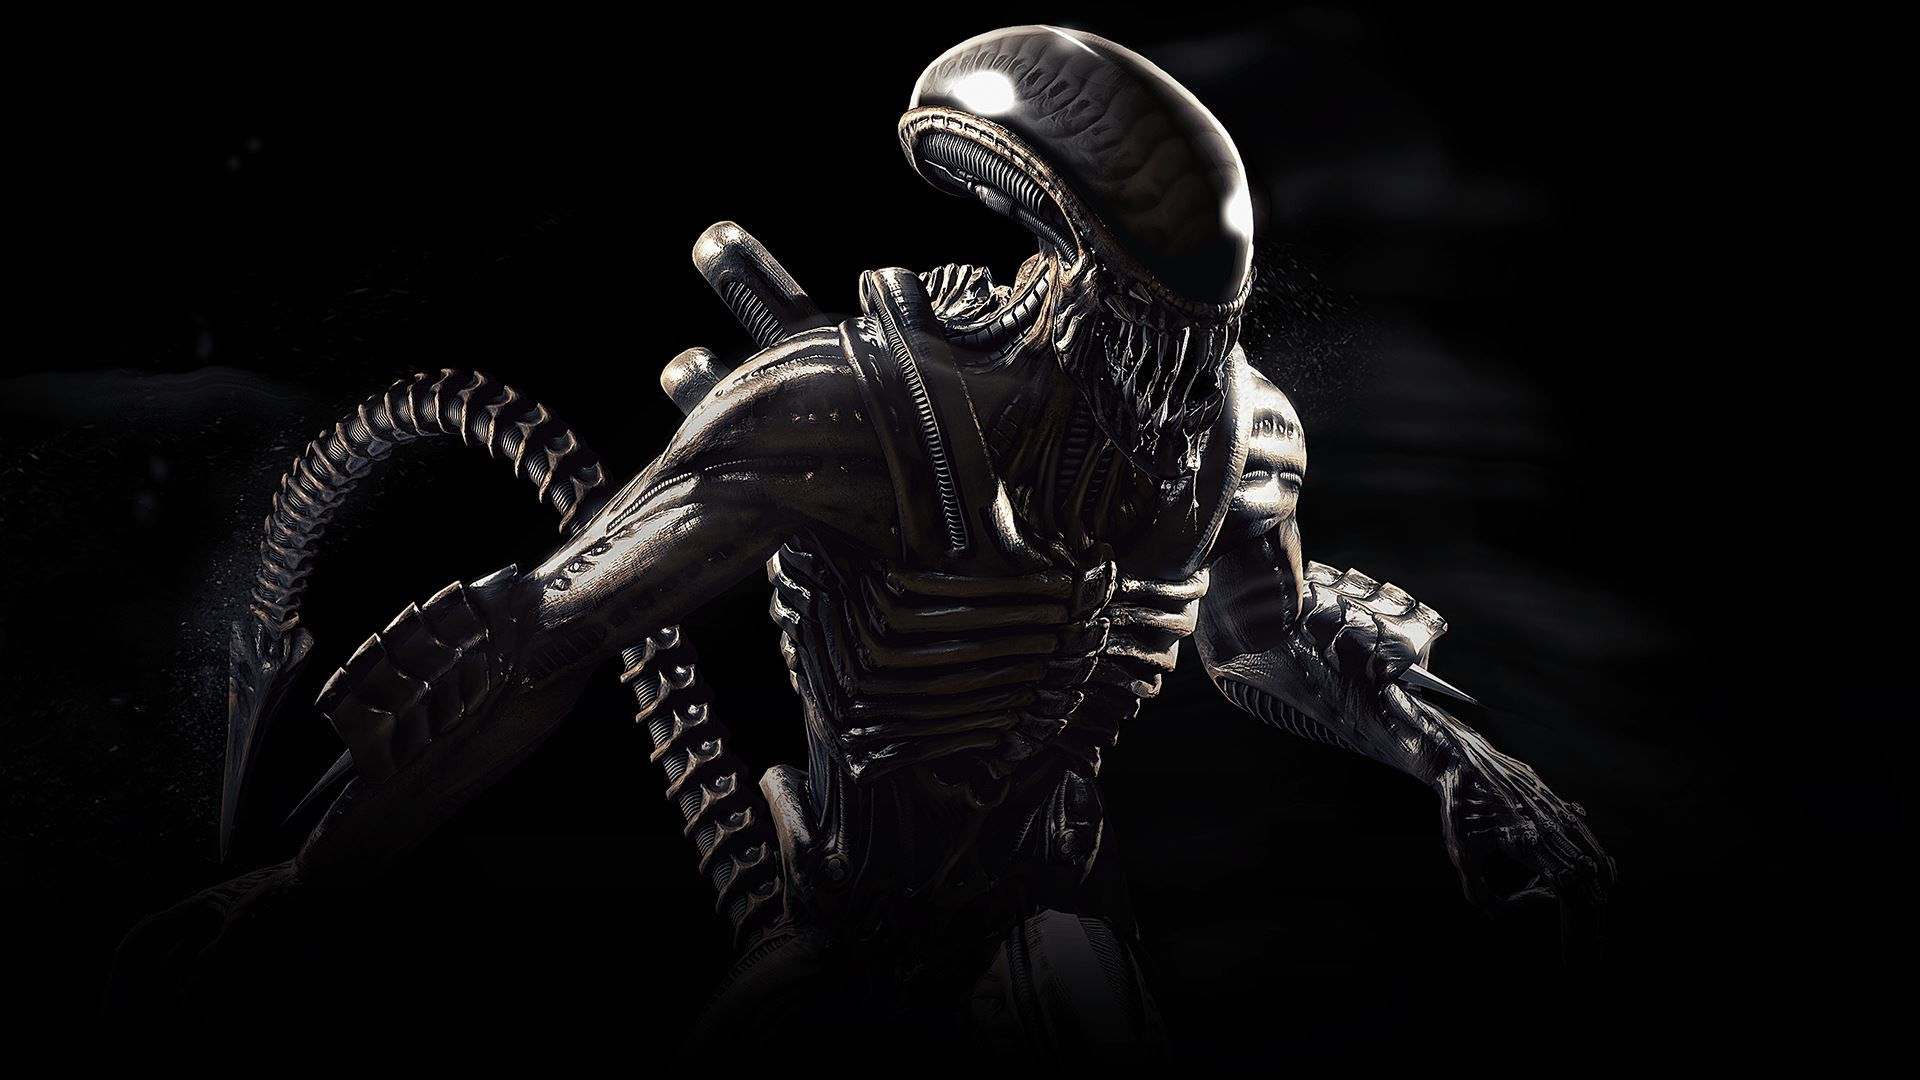 alien wallpaper download free stunning hd wallpapers for desktop